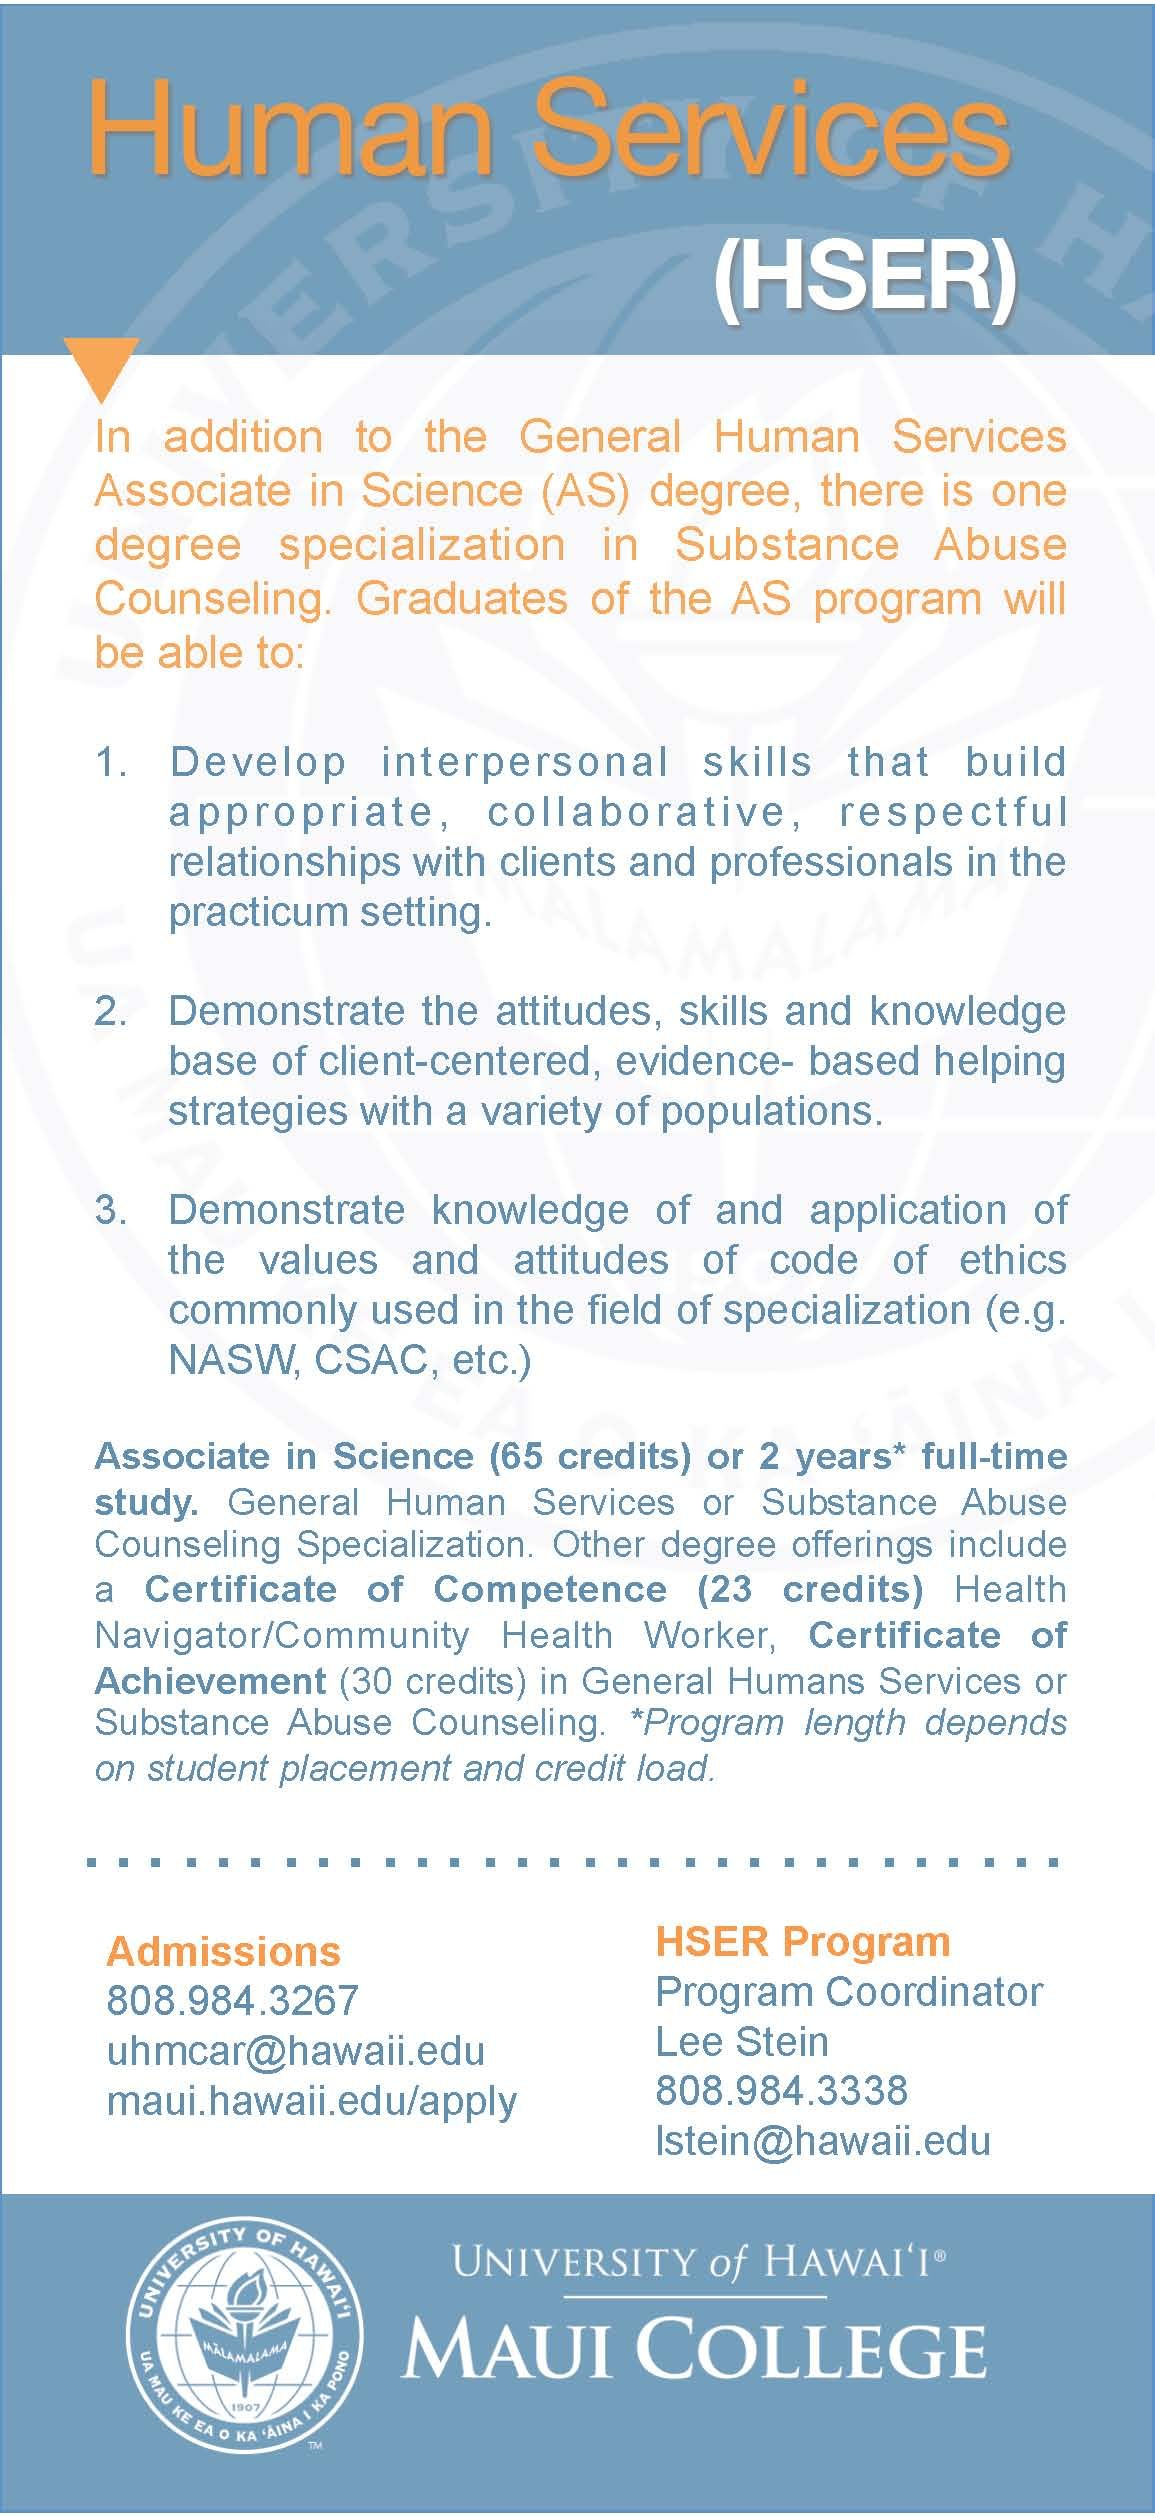 Pin By Uh Maui College On Program Cards Human Services Substance Abuse Counseling Interpersonal Skills